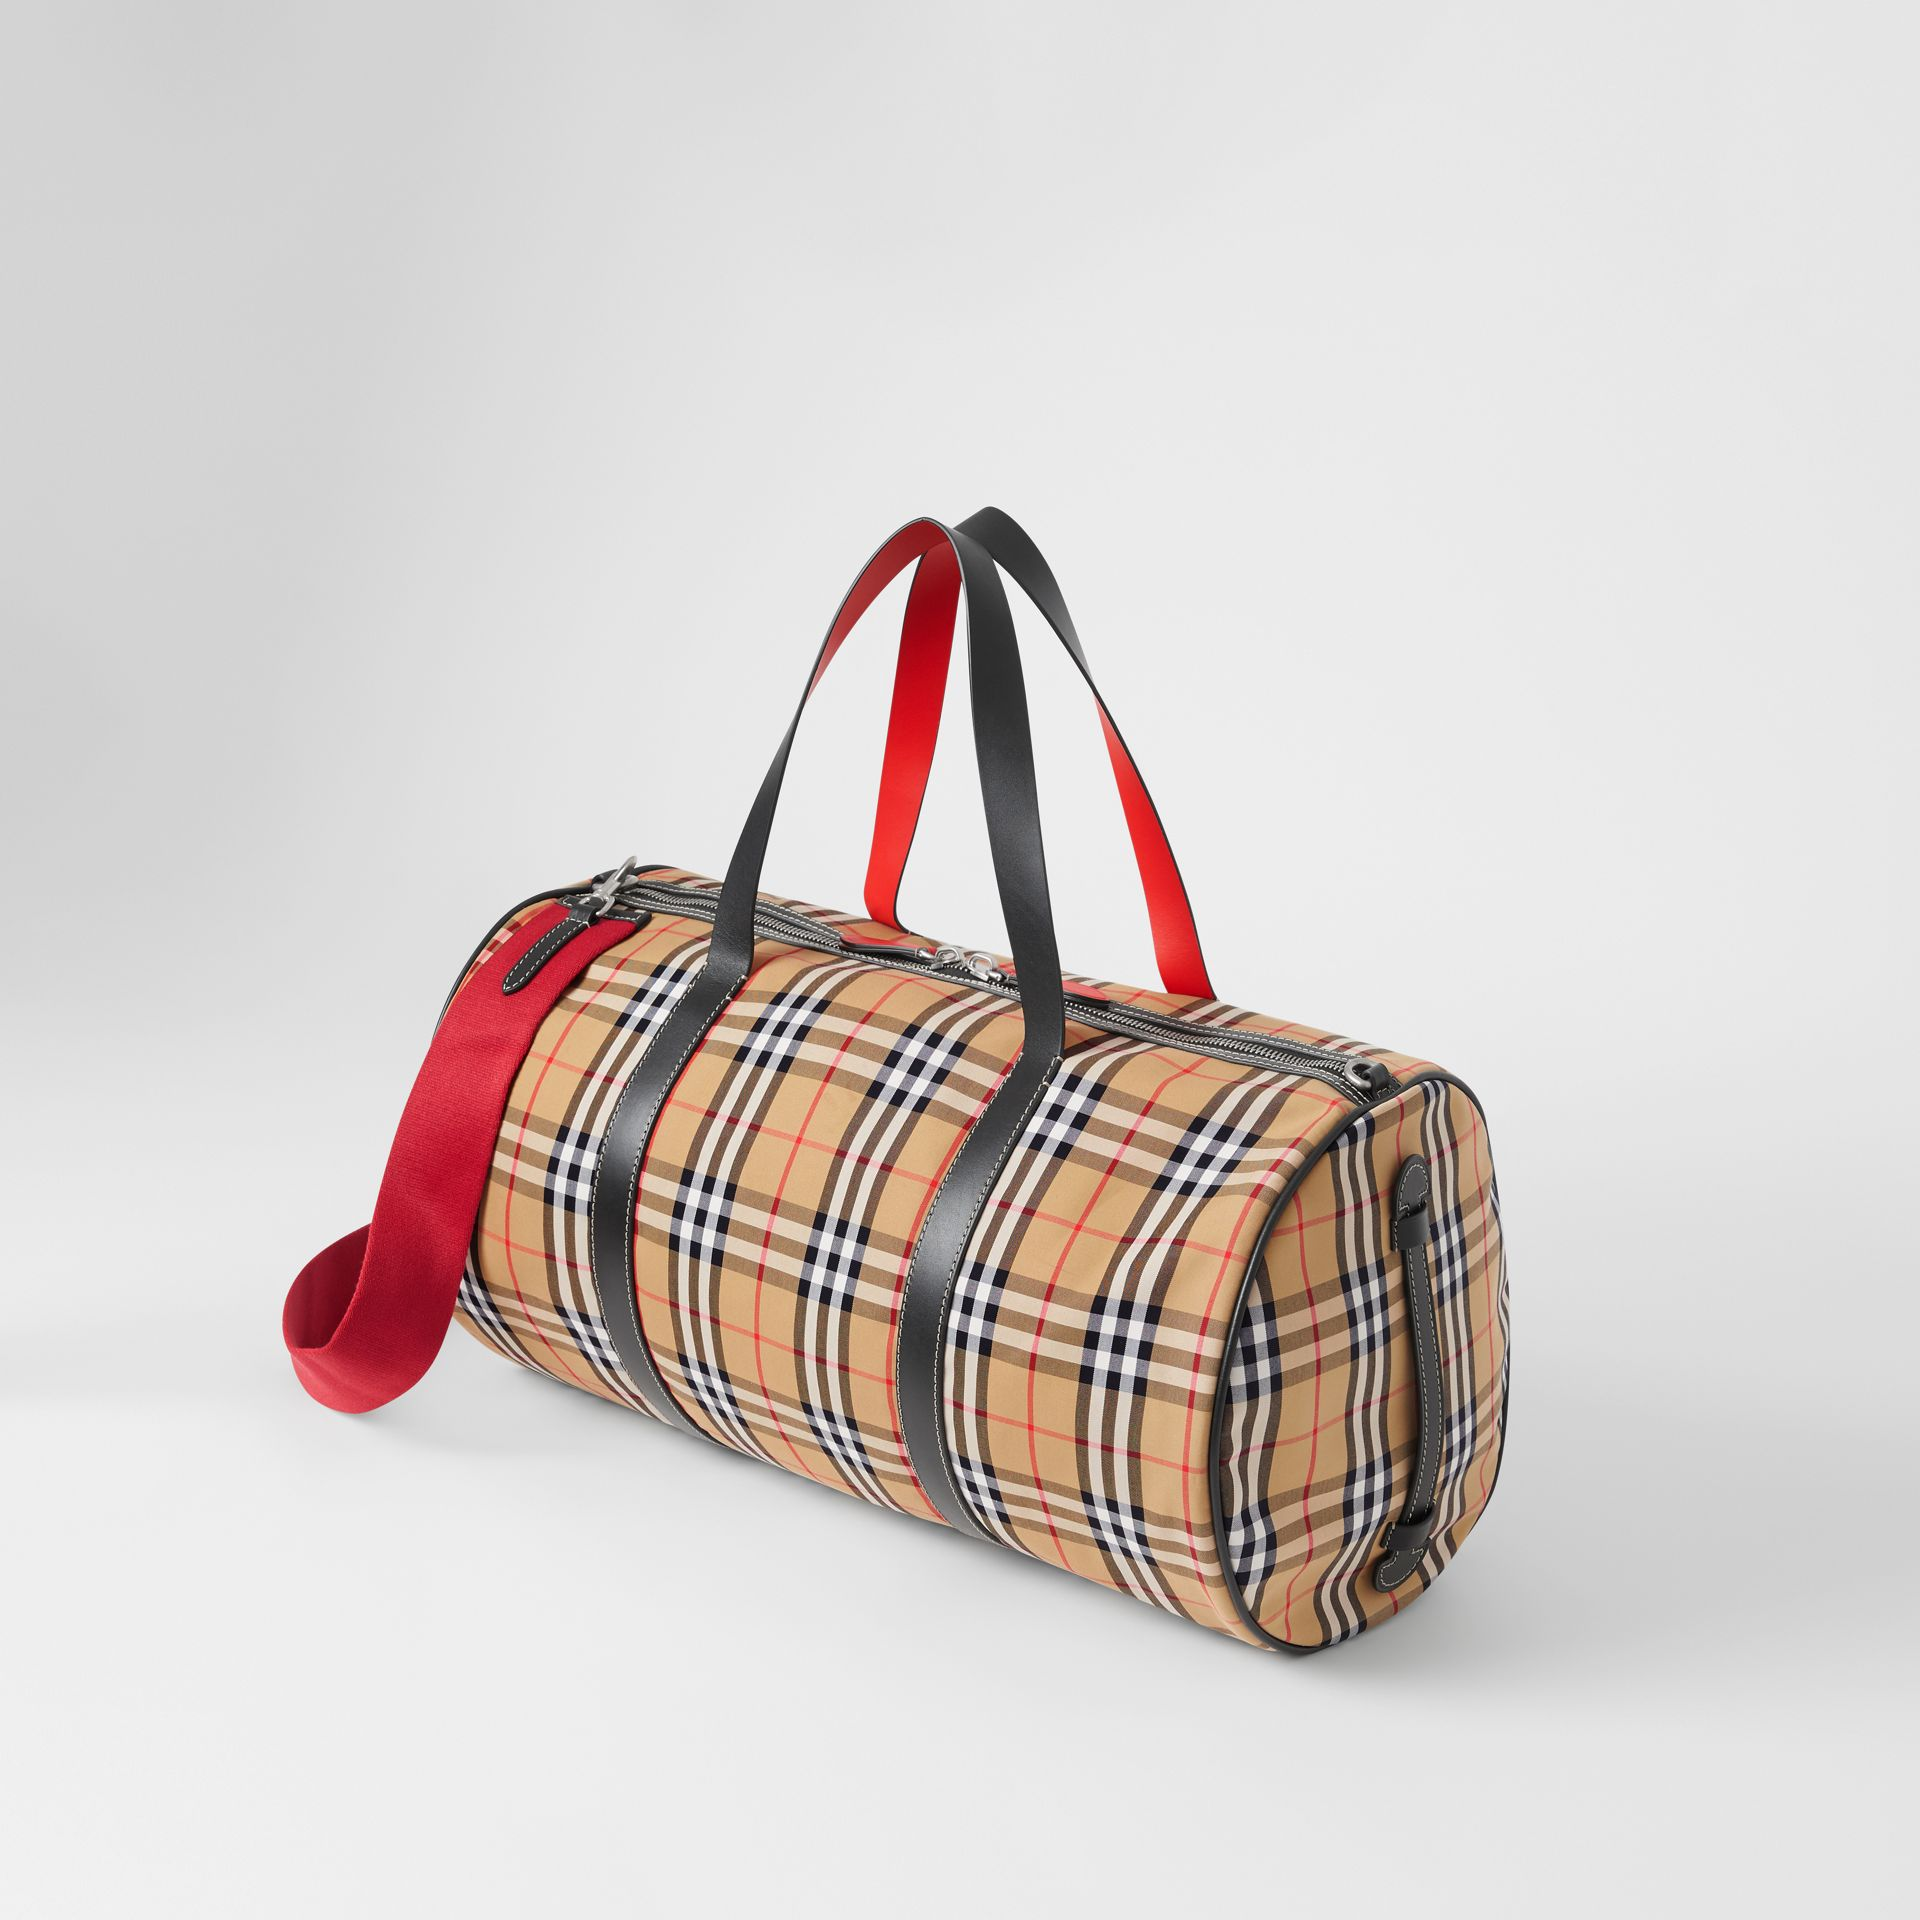 Large Vintage Check and Leather Barrel Bag in Military Red - Men | Burberry Hong Kong - gallery image 6